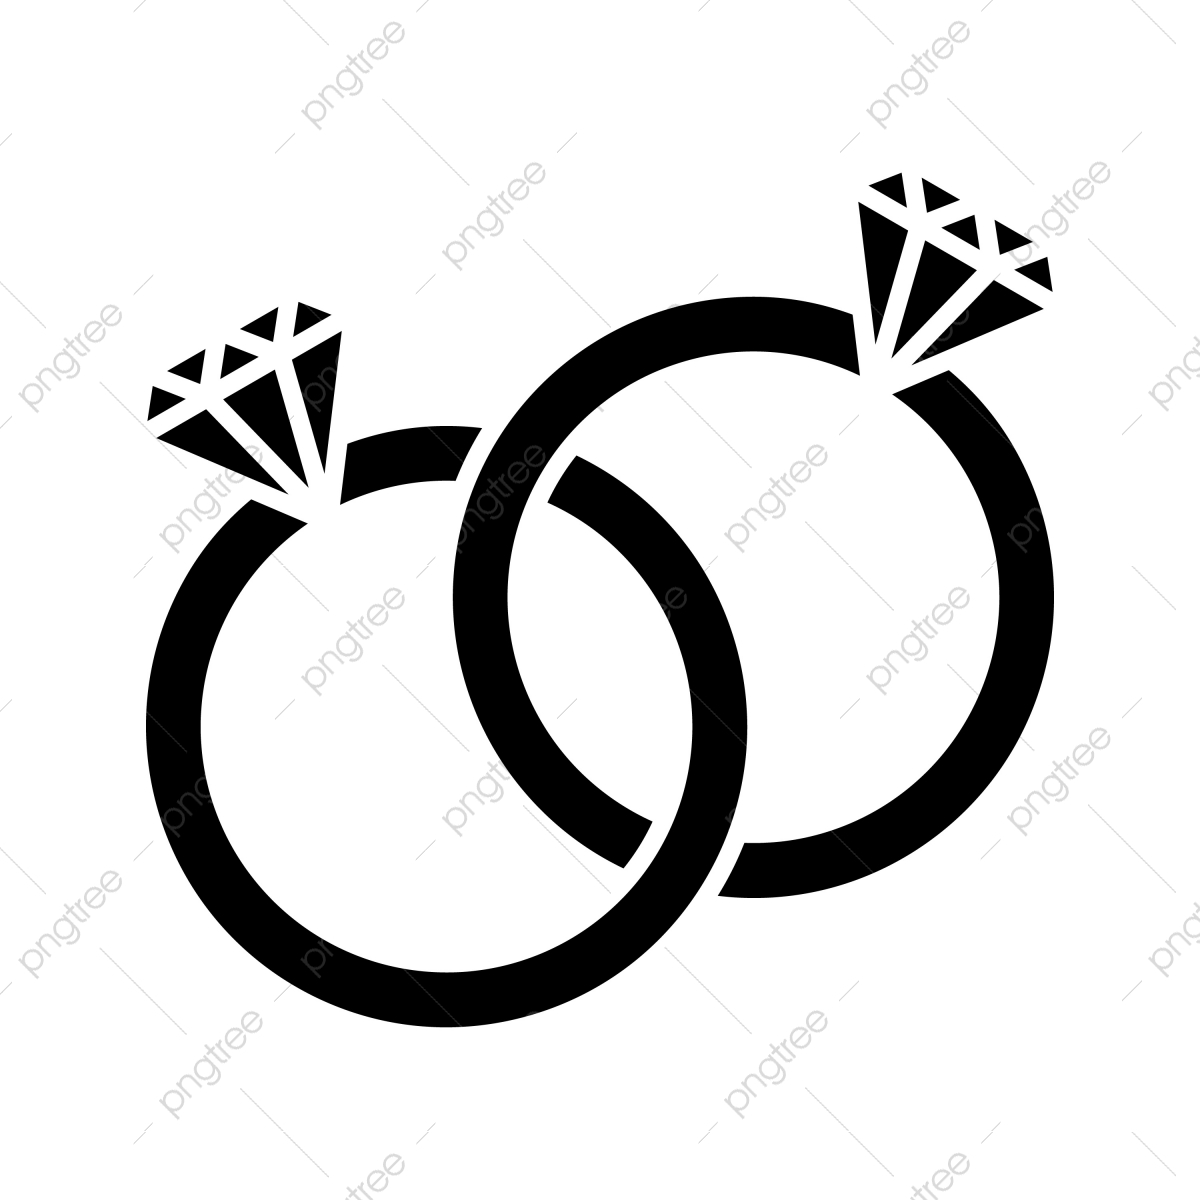 ring png images vector and psd files free download on pngtree https pngtree com freepng diamond wedding ring 5244723 html